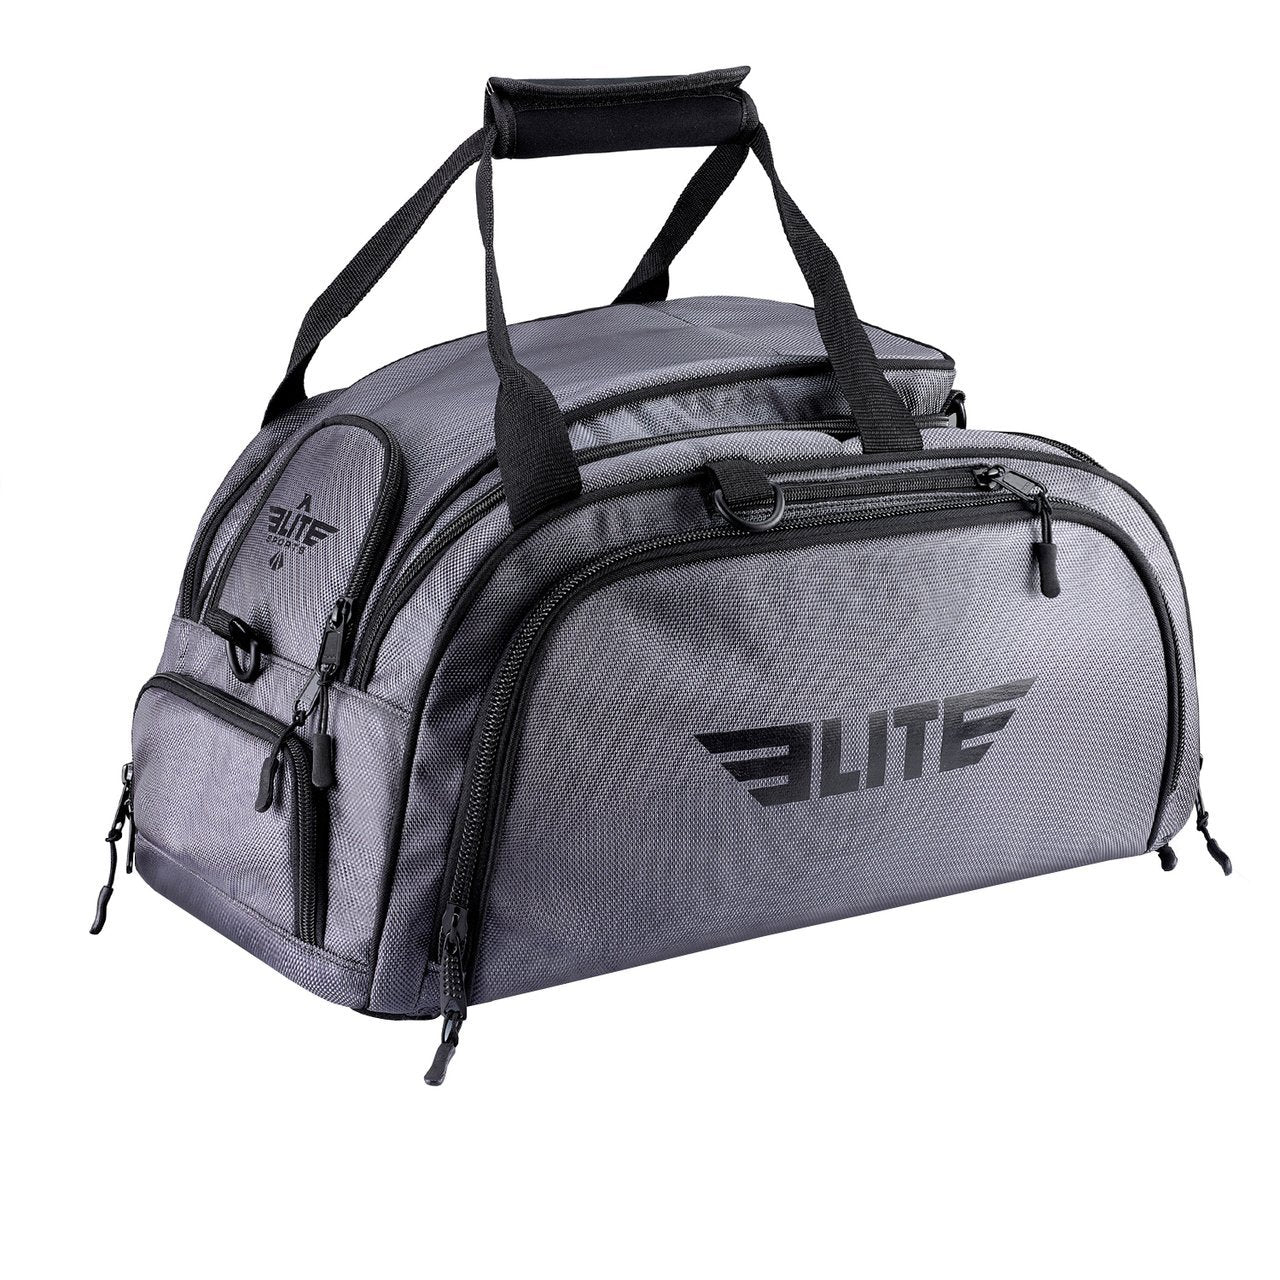 Load image into Gallery viewer, Elite Sports Warrior Series Medium Gray Boxing MMA BJJ Gear Gym Duffel Bag & Backpack